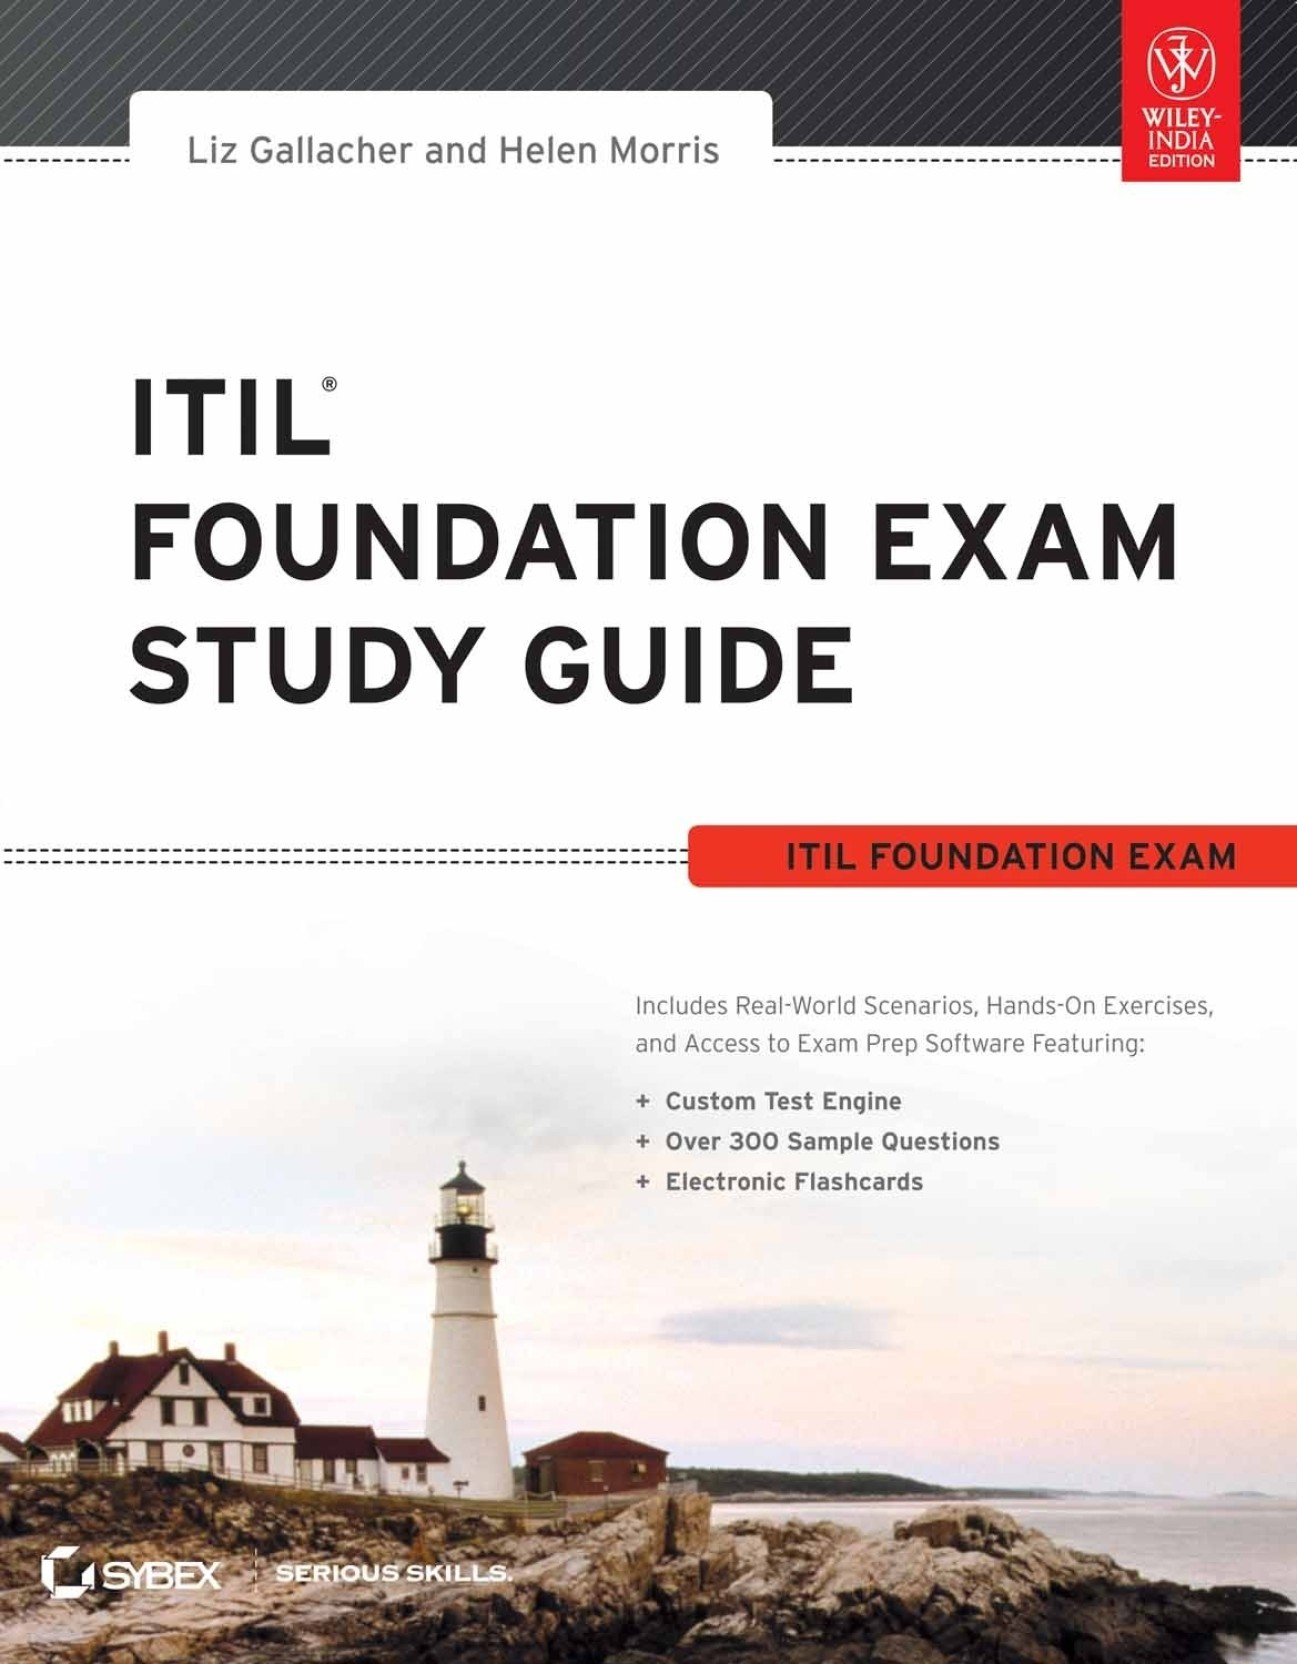 Itil foundation exam study guide buy itil foundation exam study itil foundation exam study guide share xflitez Images